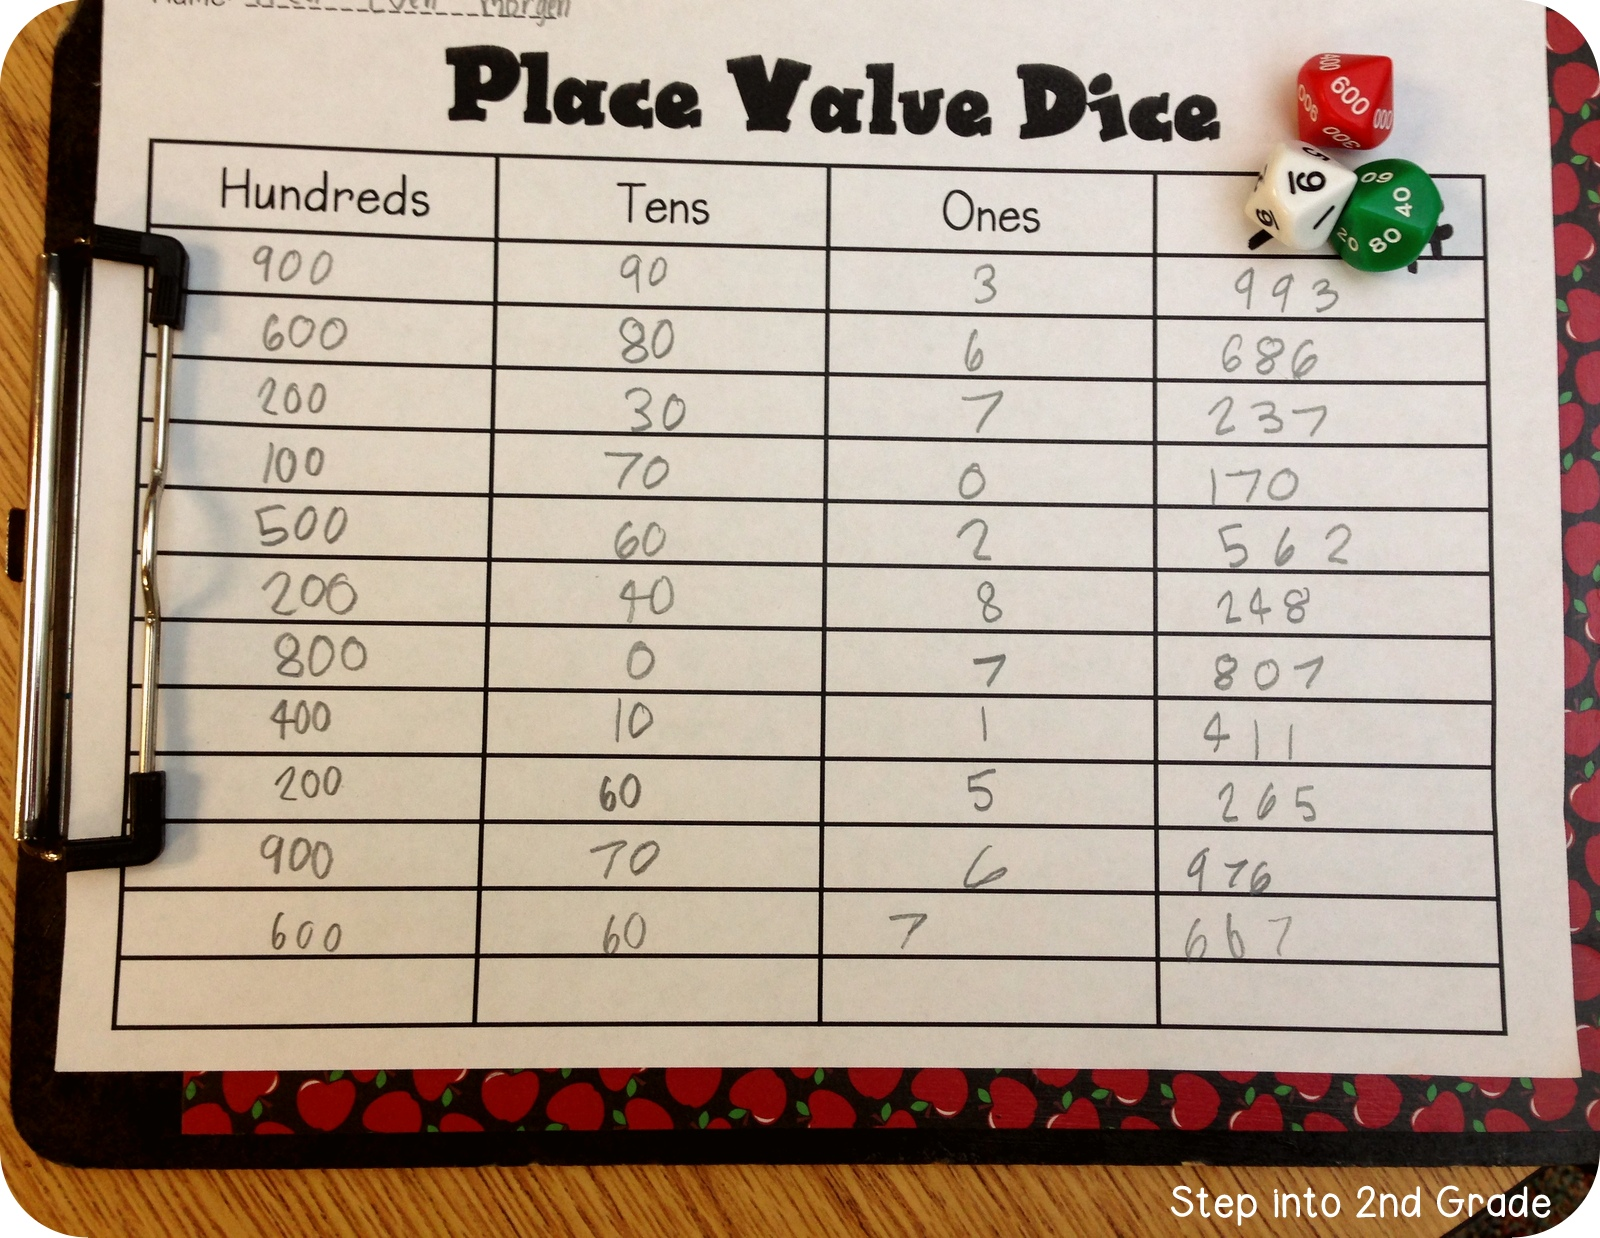 Step Into 2nd Grade With Mrs Lemons More Mudge And Place Value